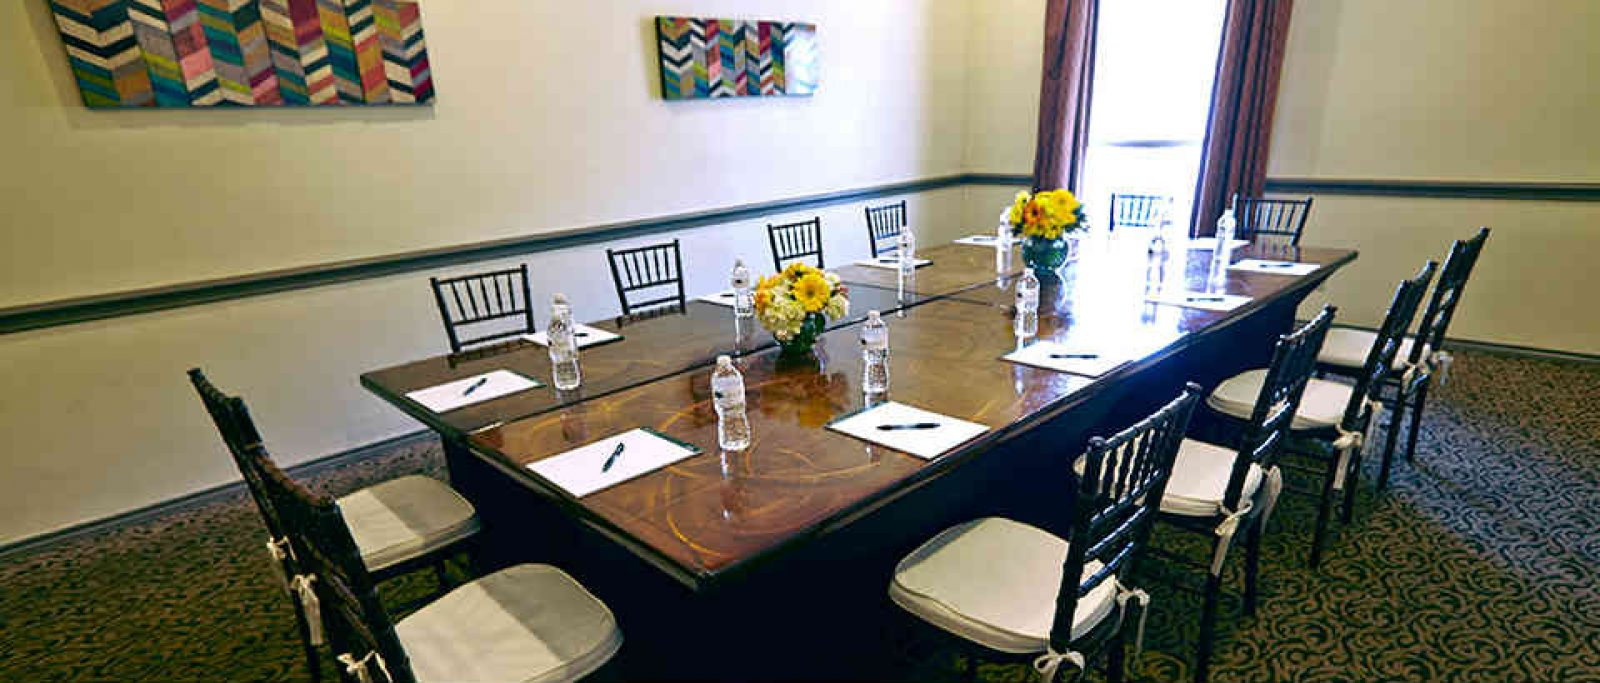 Canyon-Creek-Country-Club-Richardson-TX-meeting-room-960x410_rotatingGalleryFront